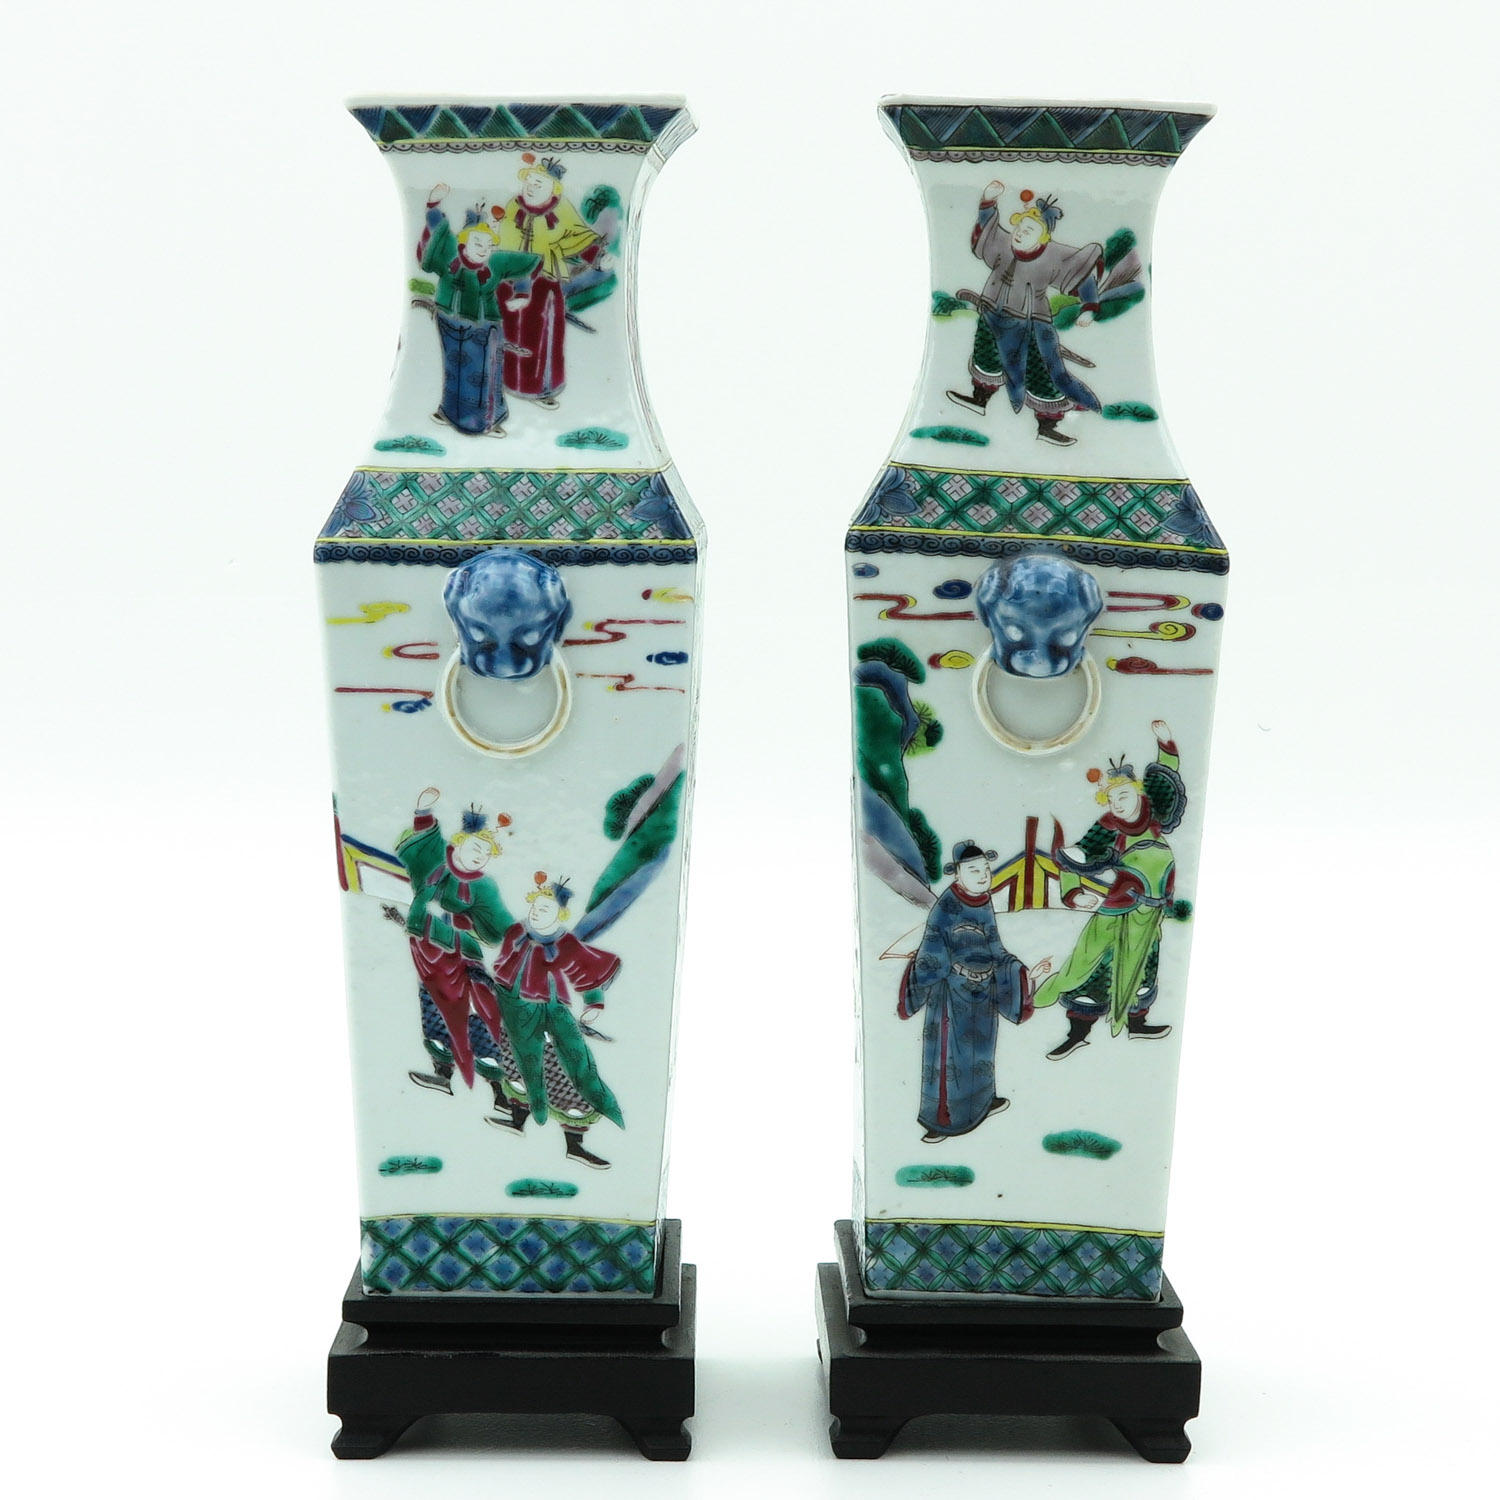 Lot 7049 - A Pair of Square Vases on Wood Base